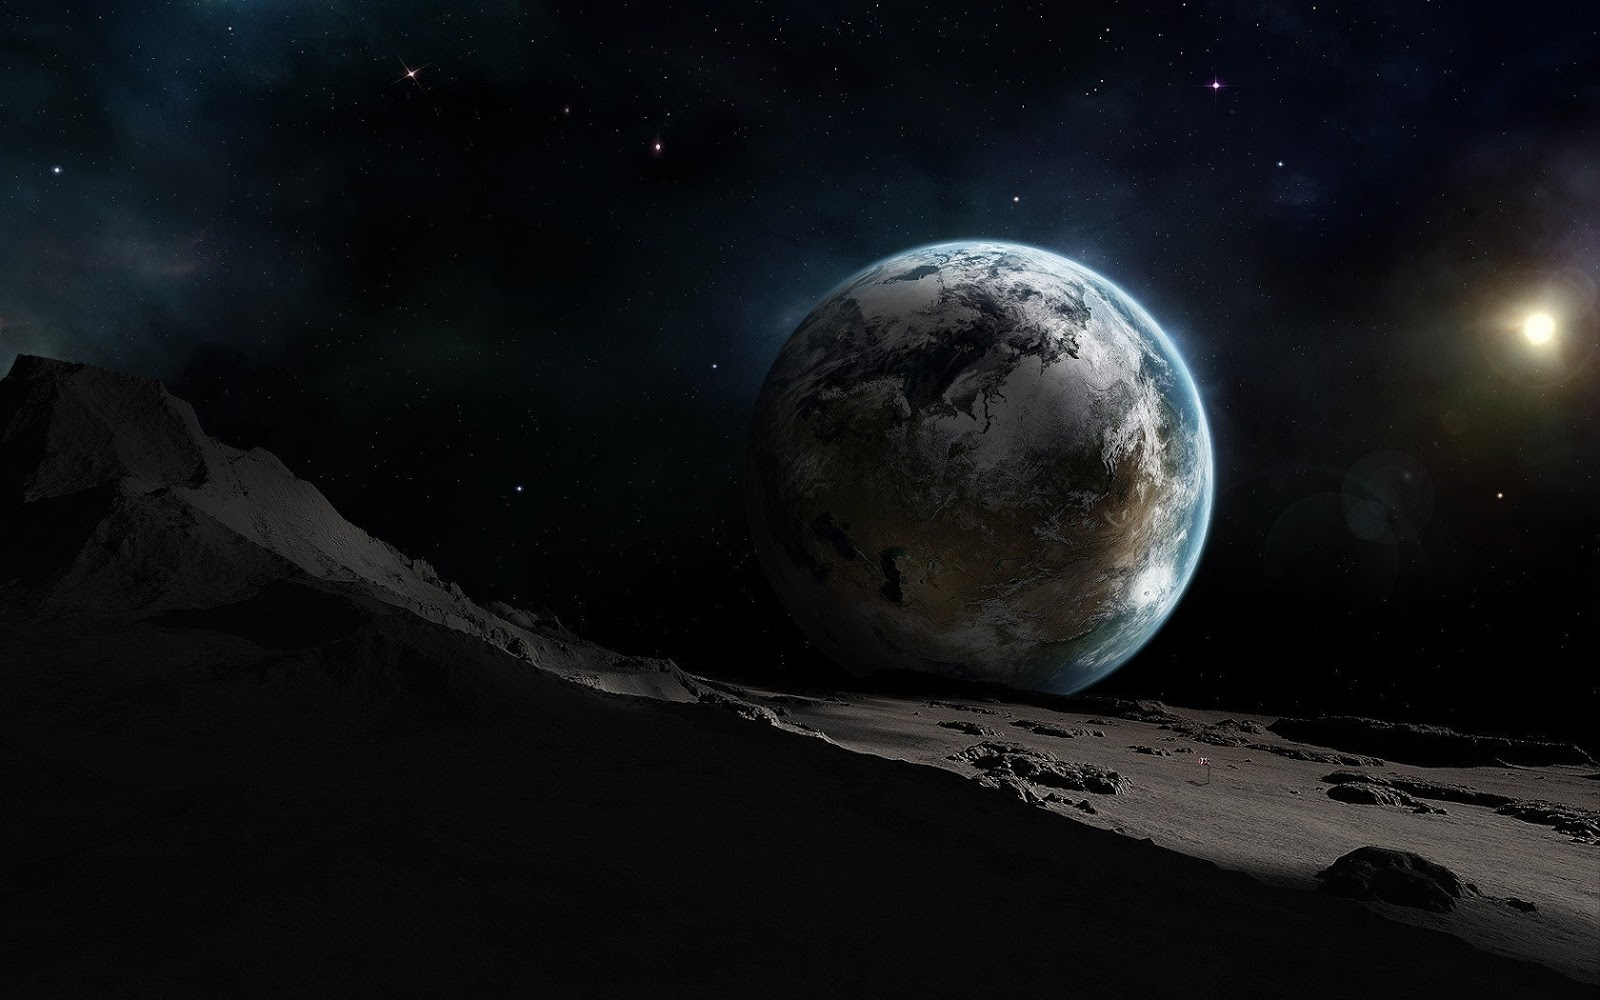 Cool photos 3d moon and earth wallpaper - Space moon wallpaper ...